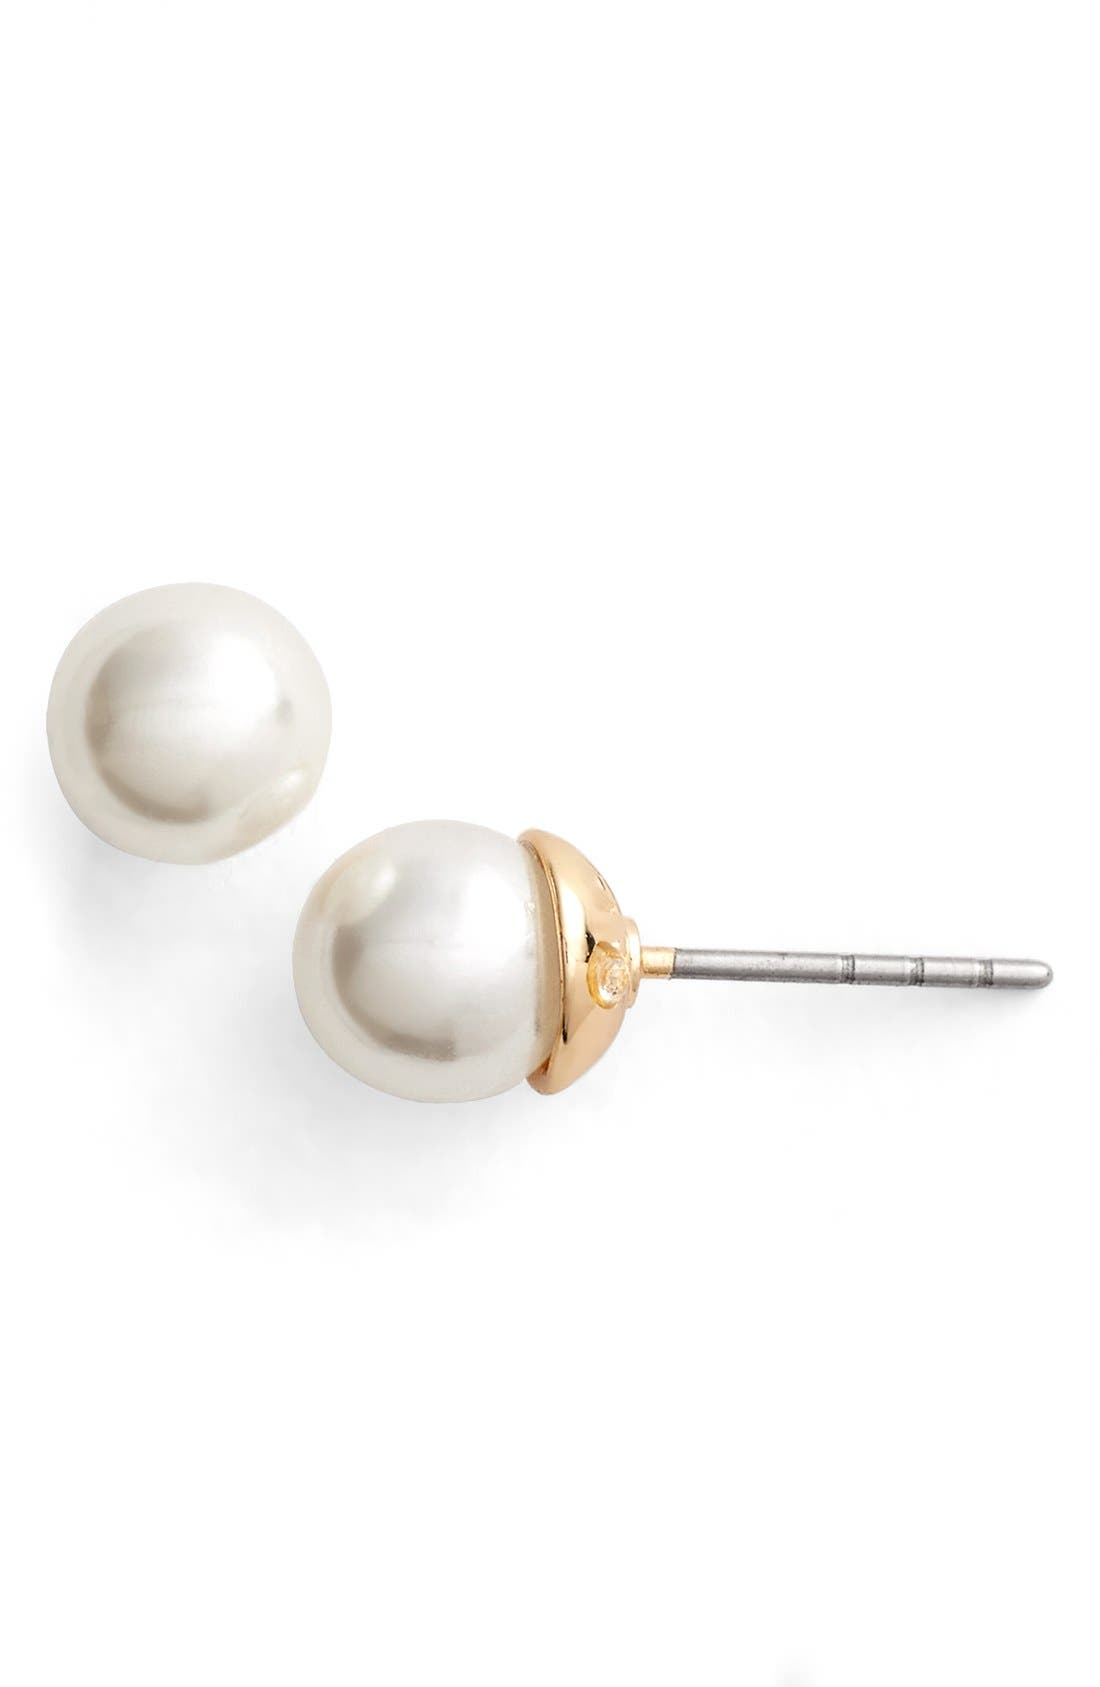 Alternate Image 1 Selected - Rebecca Minkoff 'Military Mix' Faux Pearl Stud Earrings